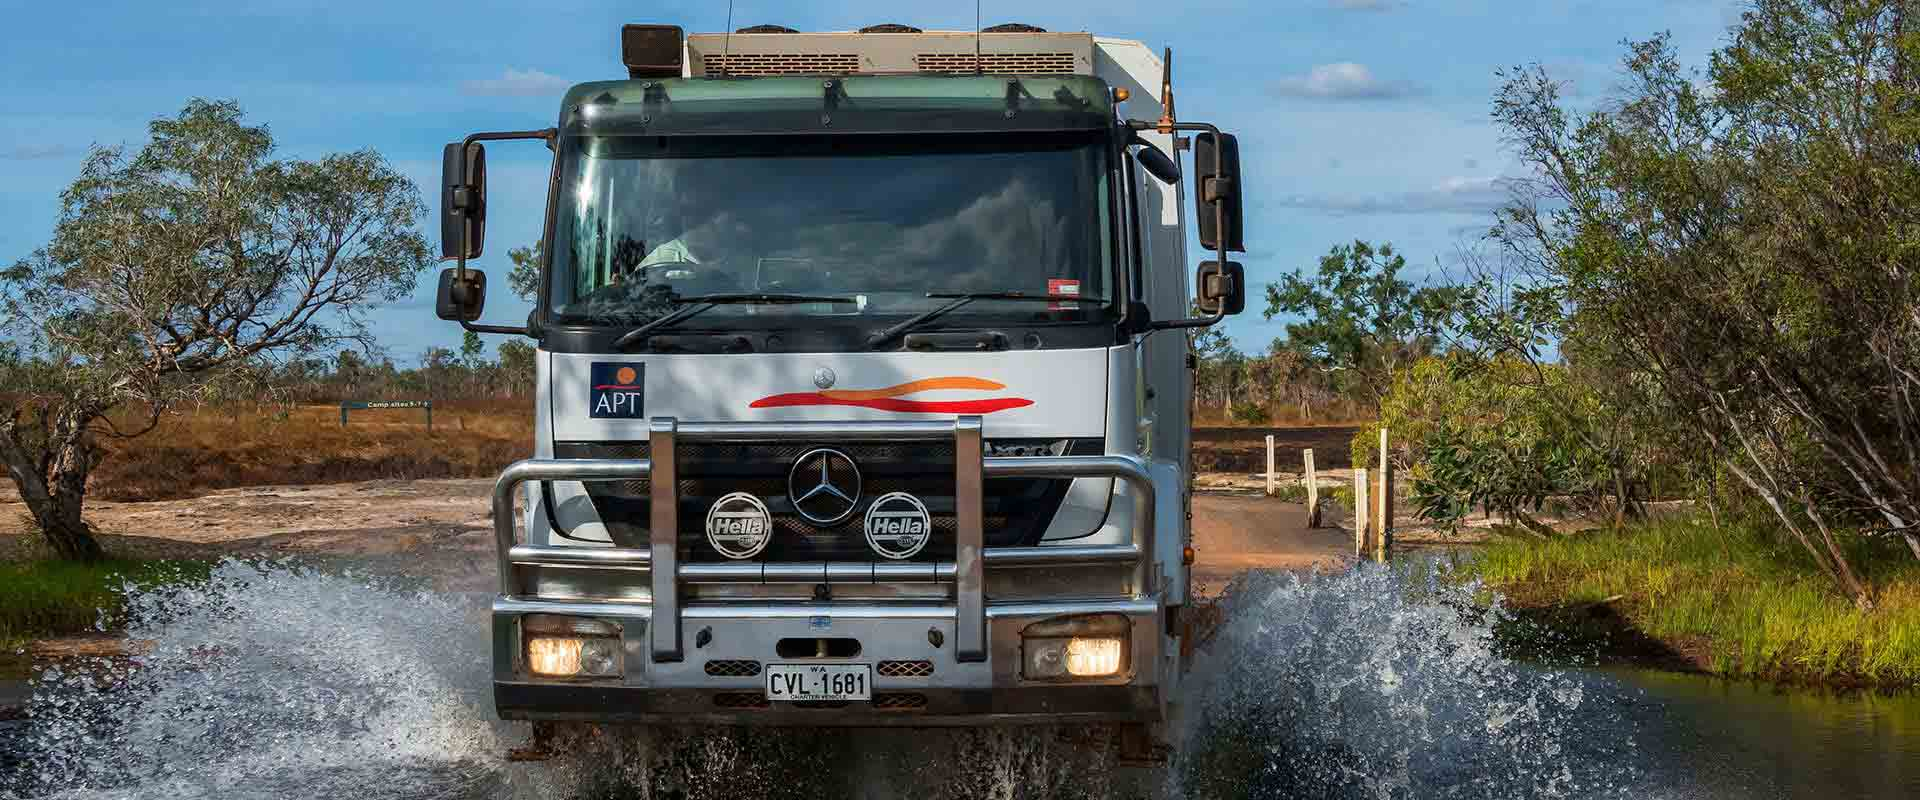 Drive through the rivers of outback Queensland on board a custom-designed 4WD